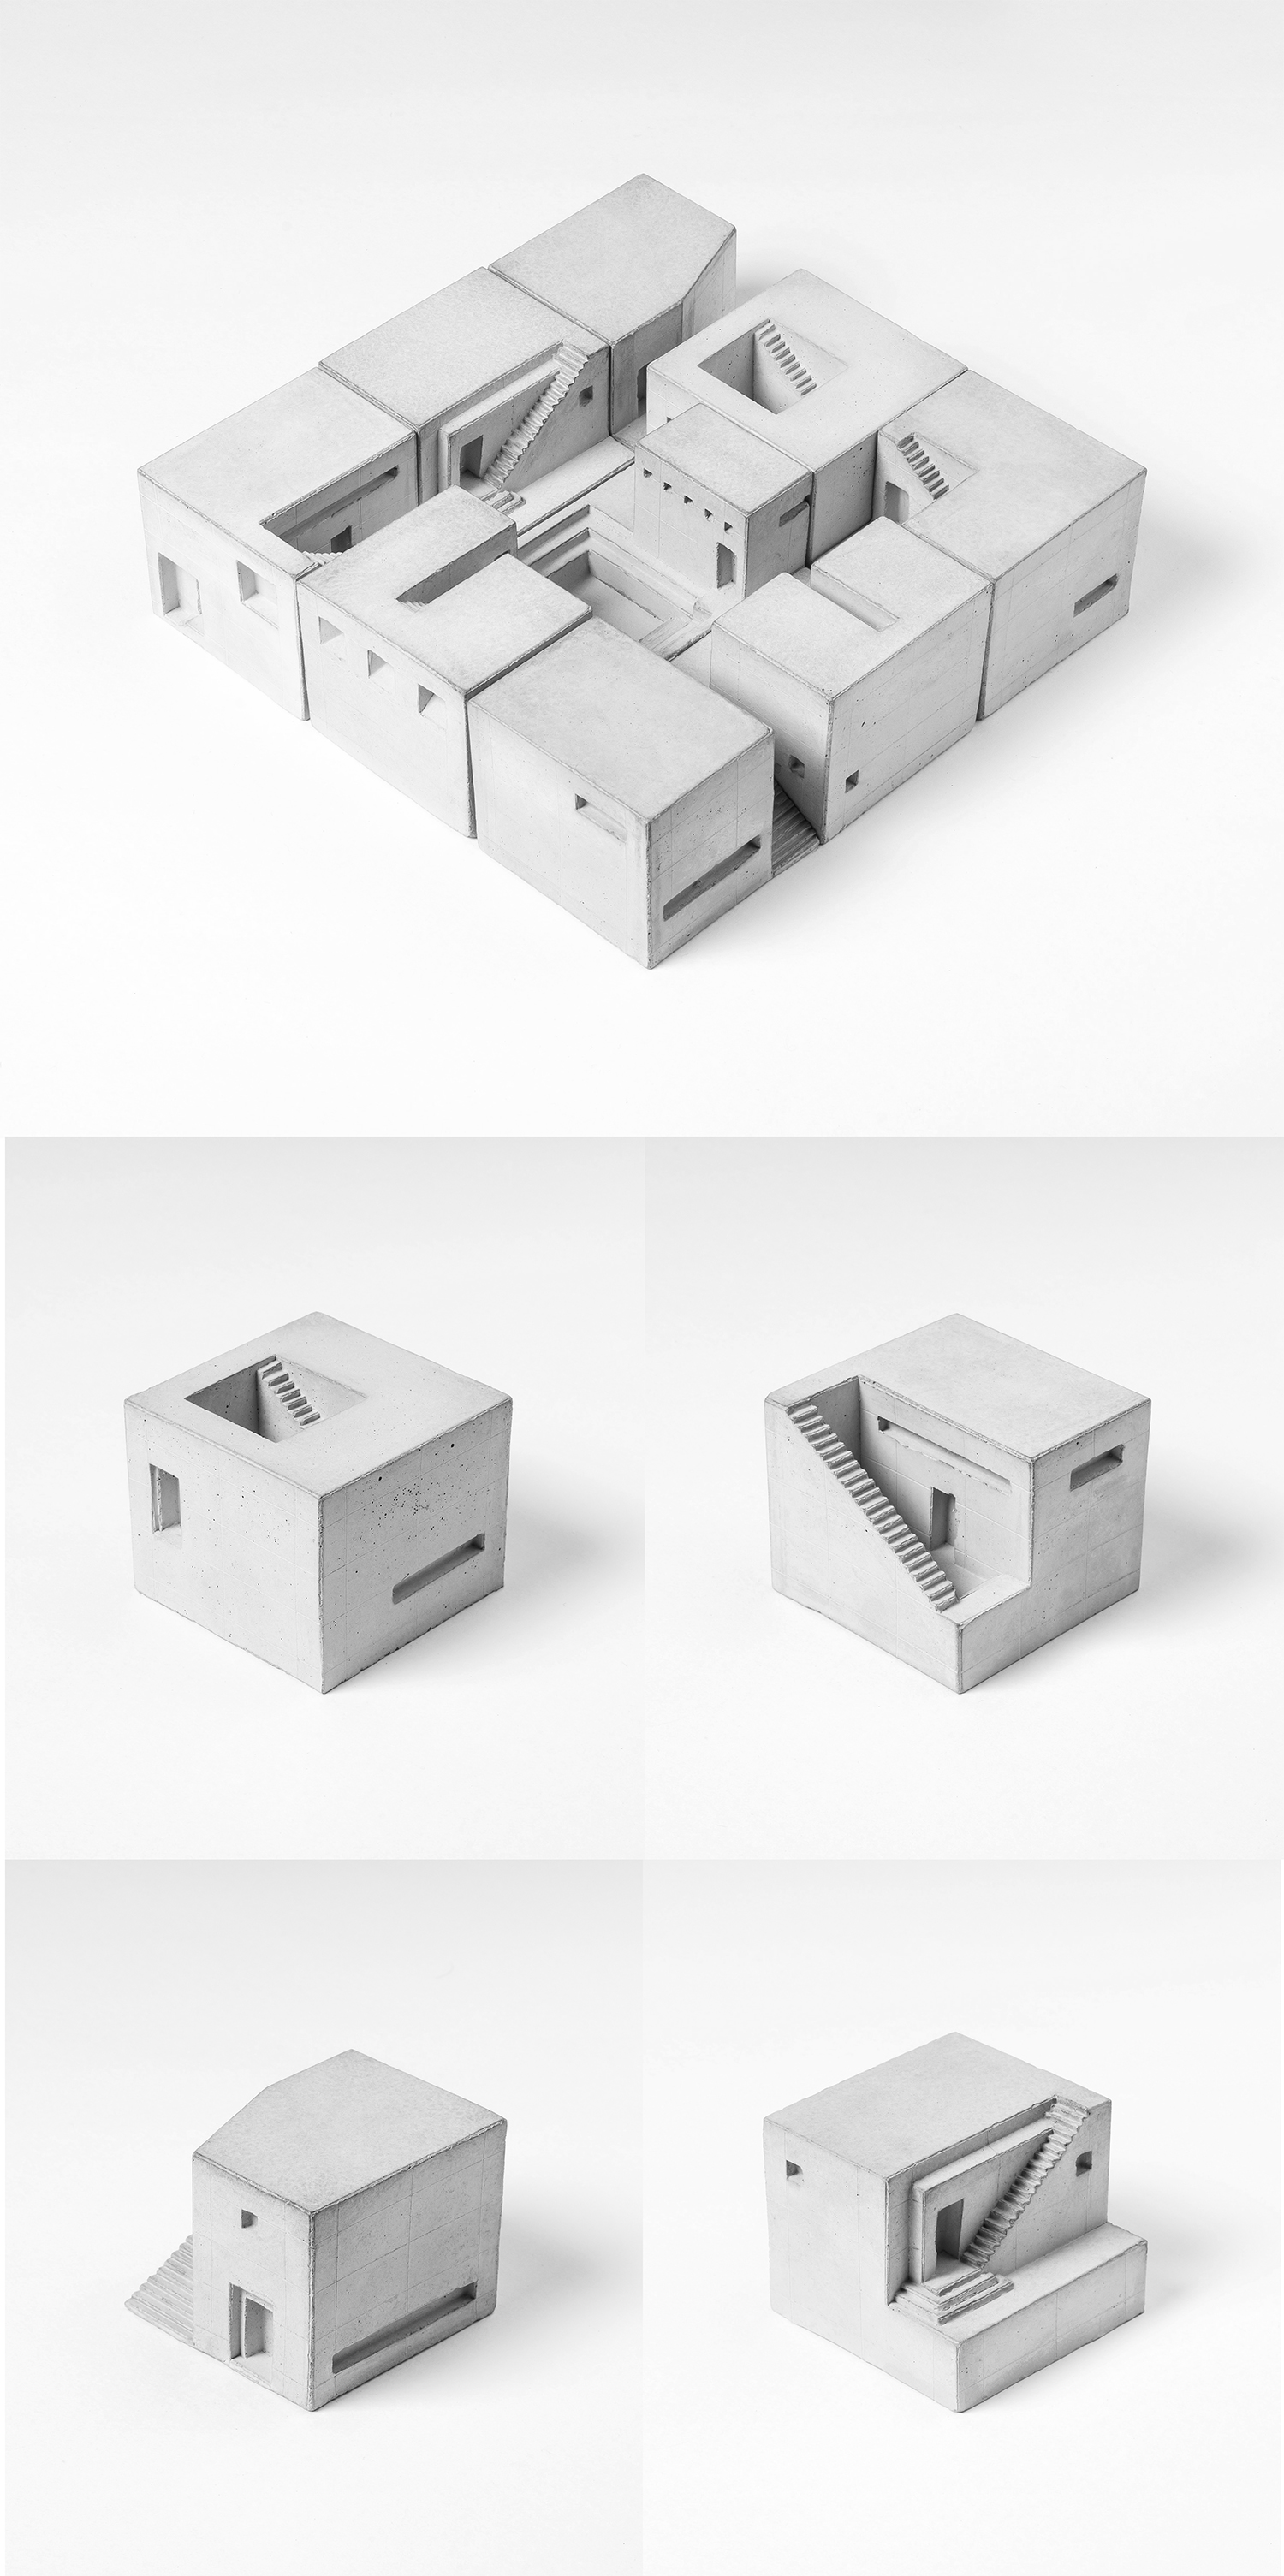 "Curator: placing these concrete modules in various permutation is fun and creates different interesting ""spaces"". - These miniature concrete home spaces evoke your imagination each time you glance at the different facades. There are altogether nine different homes, with each piece unique and defined by volumes and voids, encouraging you to imagine what could be lying inside."